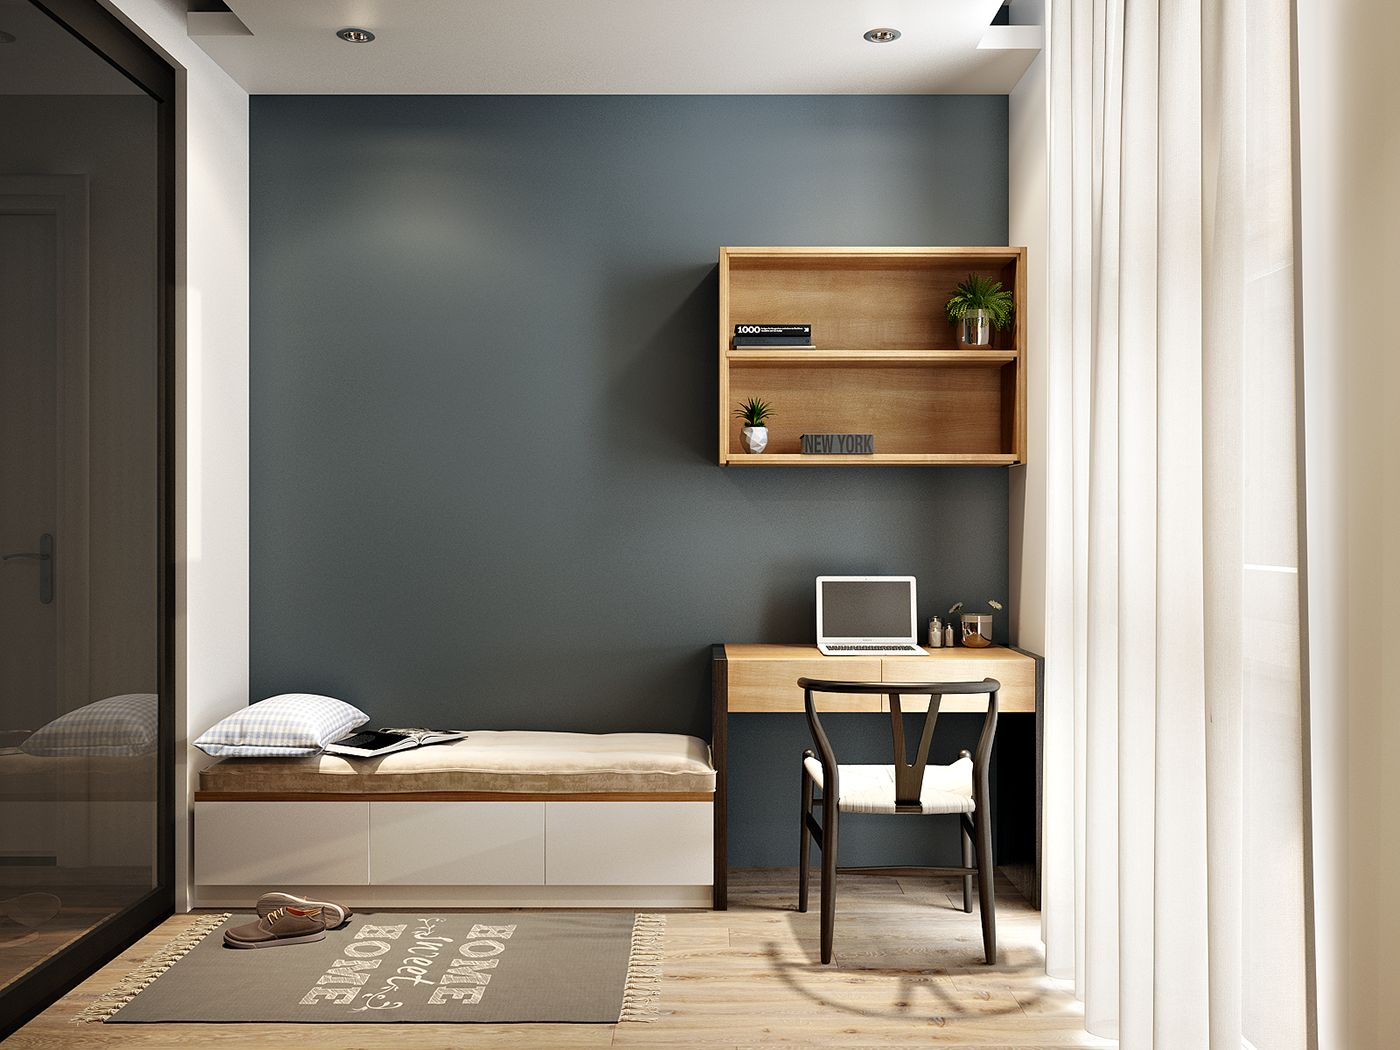 Small Bedroom Design New in Image of Simple